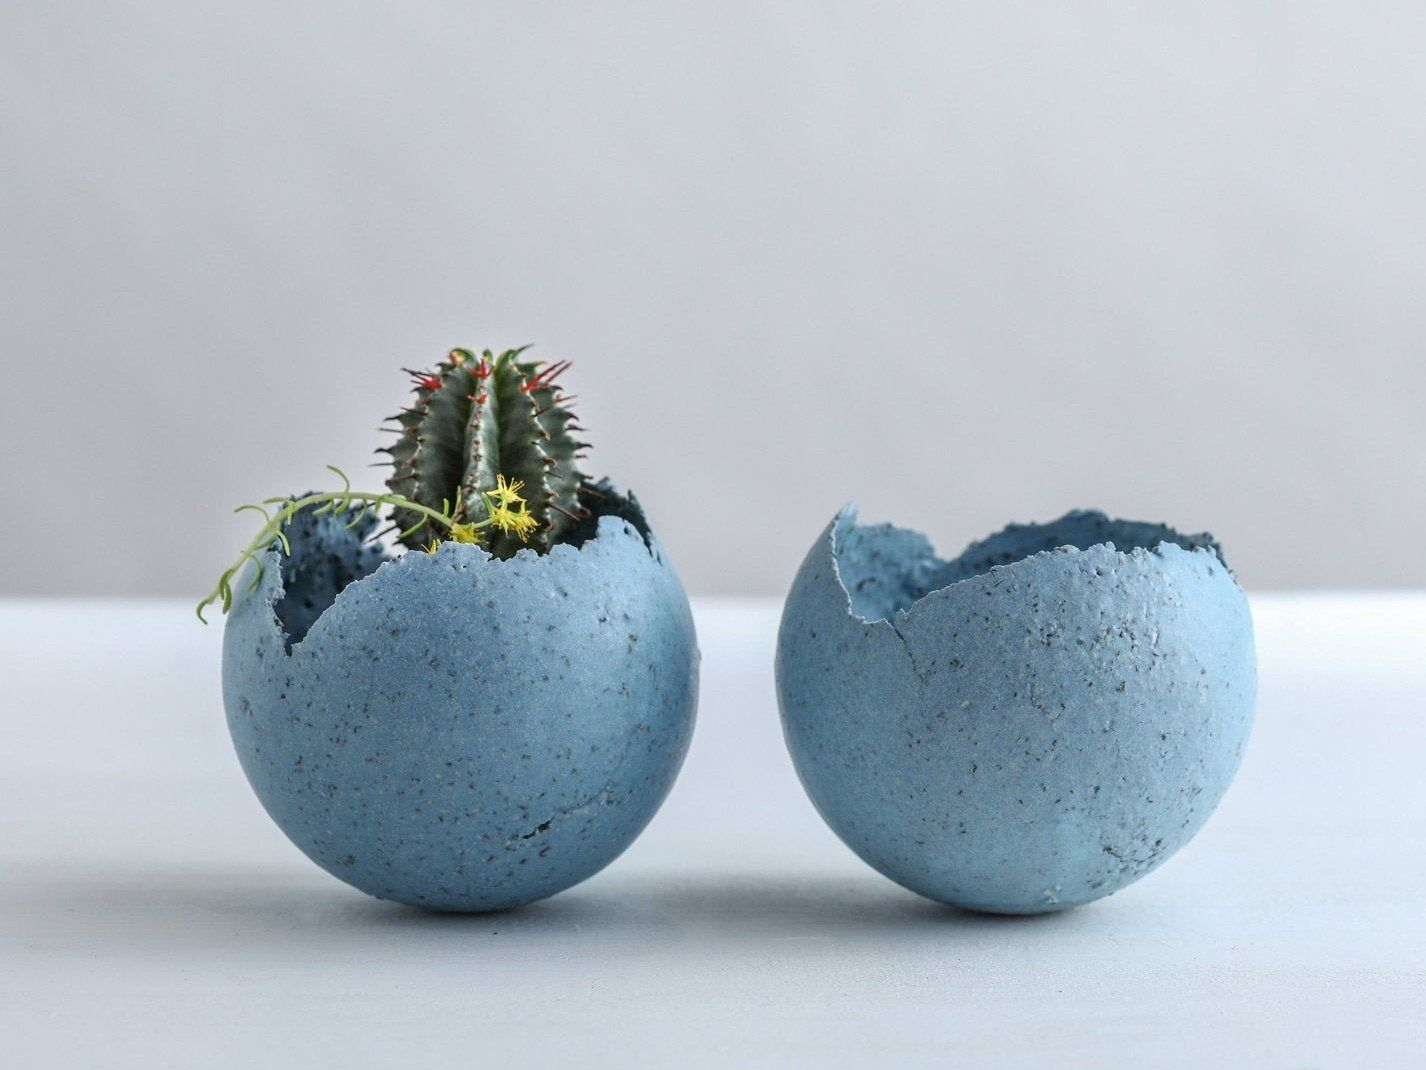 Set Of 2 Small Grained Light Blue Ceramic Planters Etsy In 2020 Contemporary Candle Holders Ceramic Planters Blue Ceramics